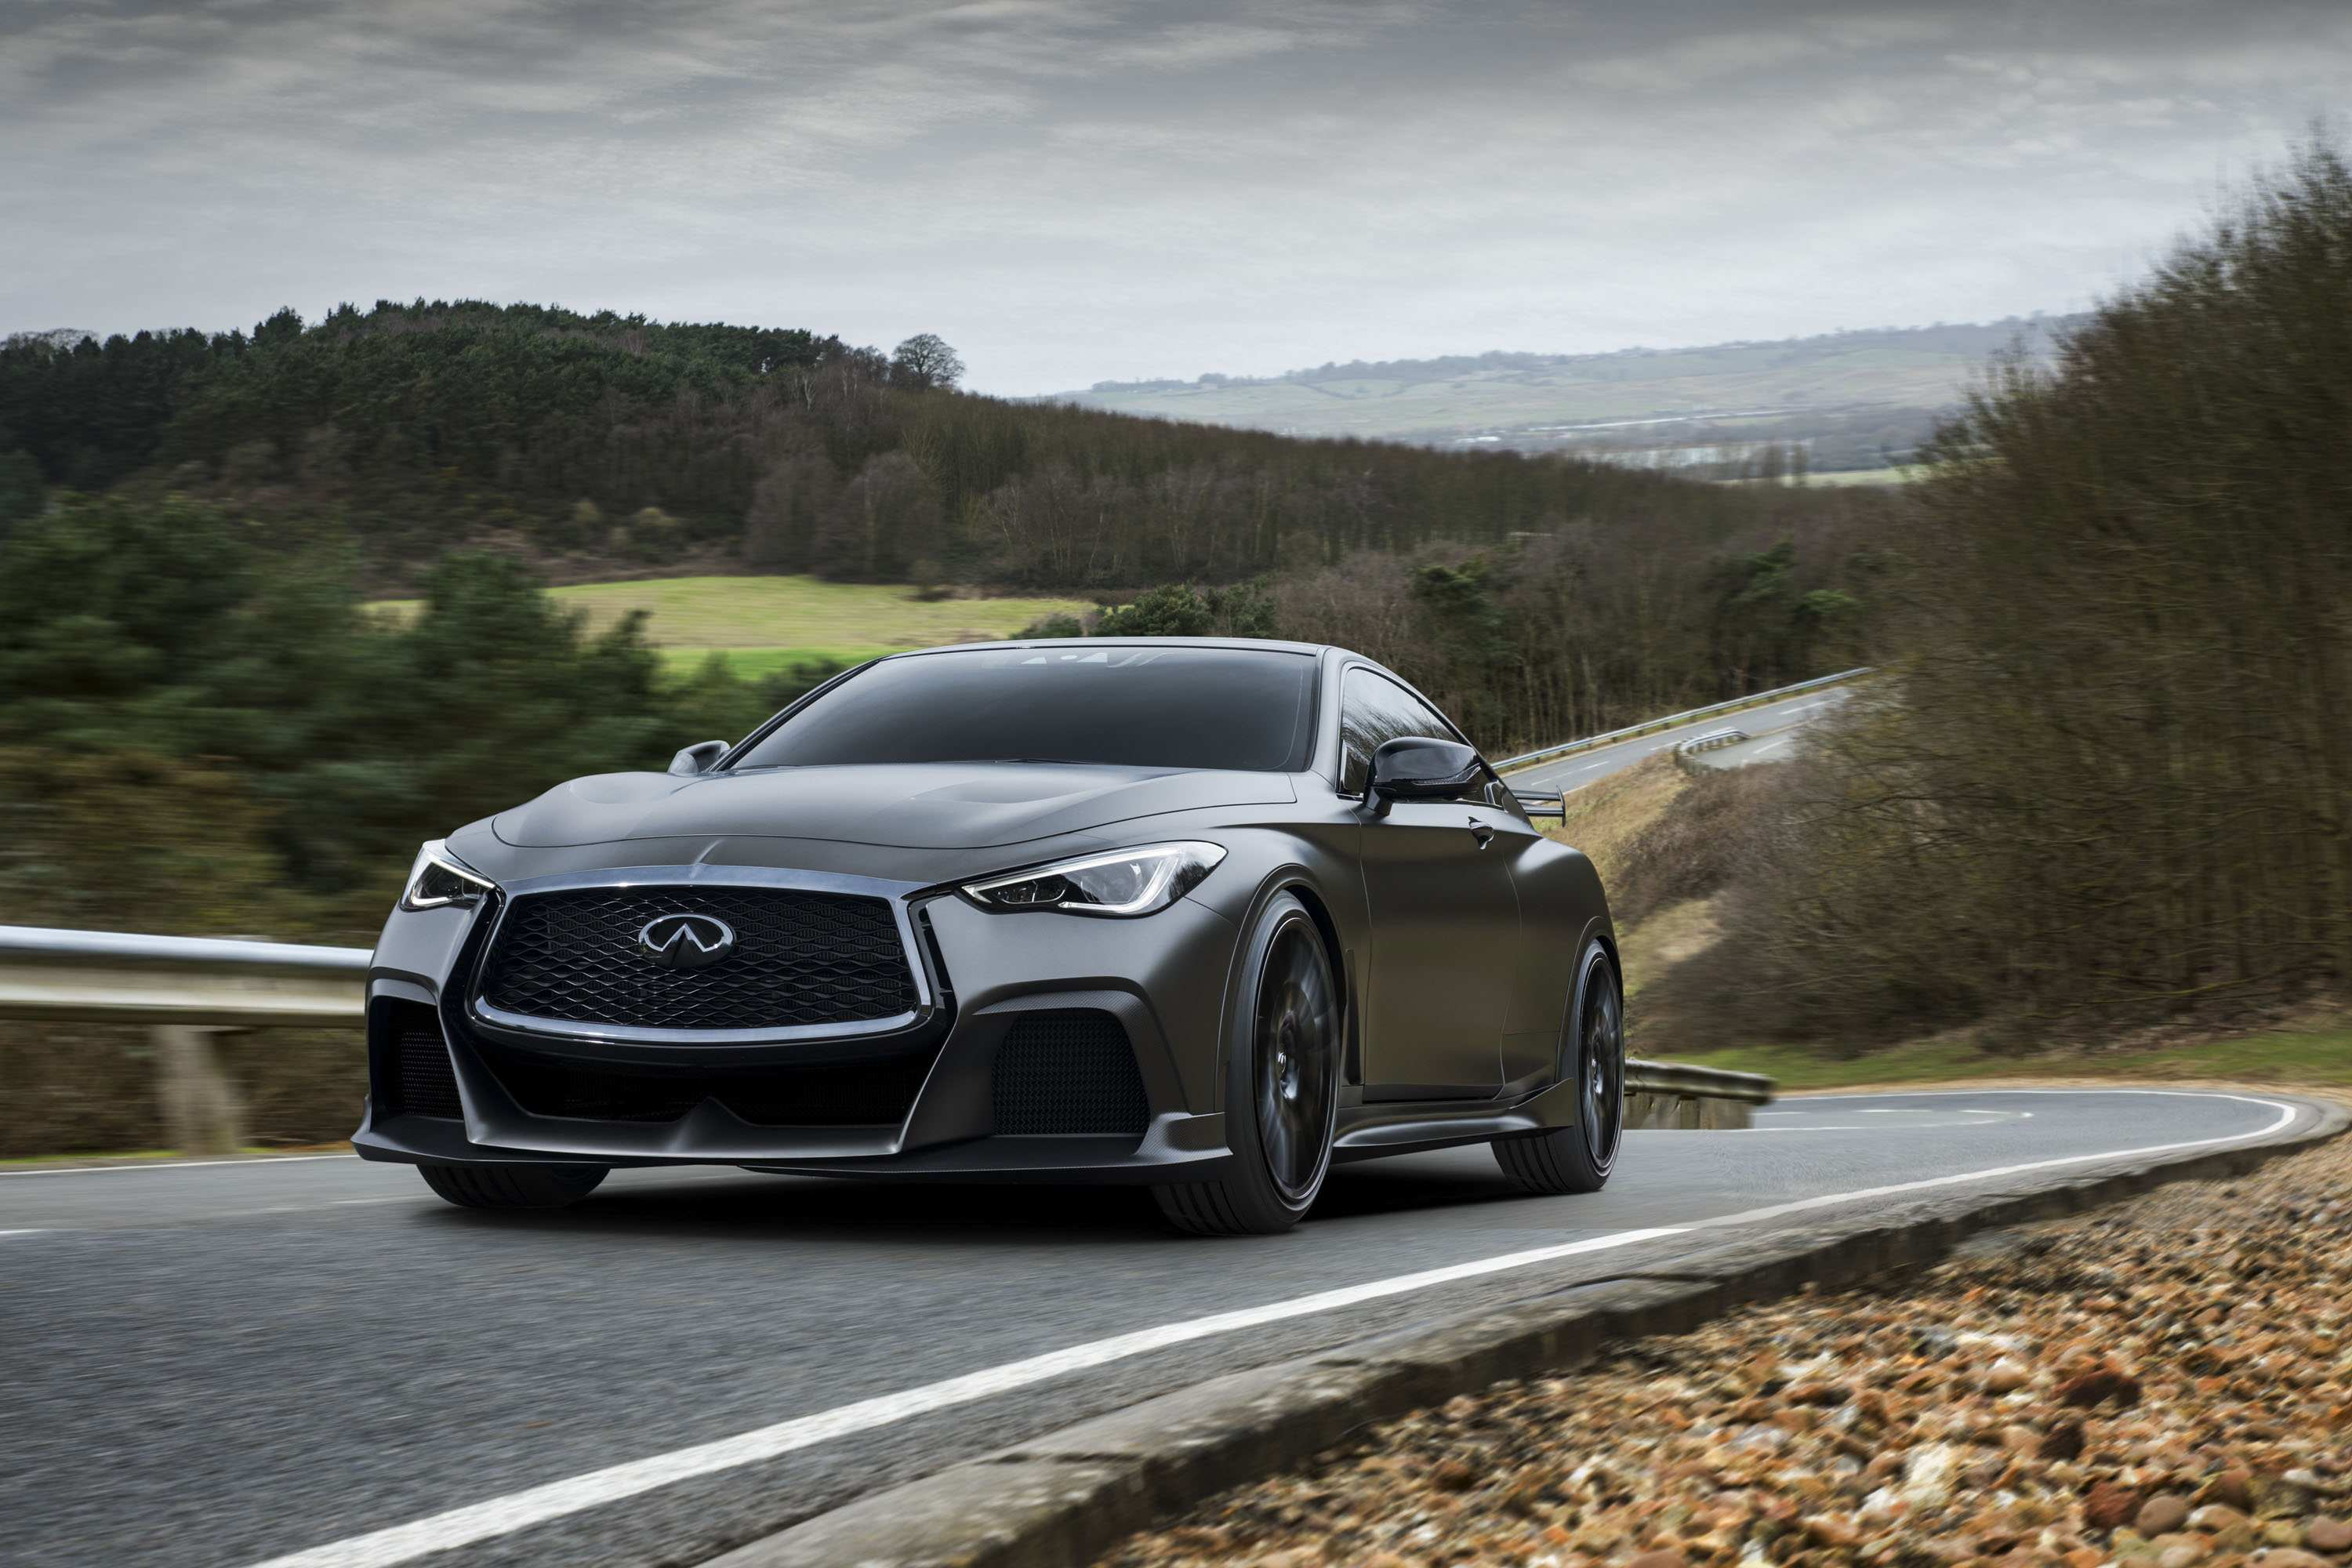 87 The 2019 Infiniti Q60 Black S Price And Release Date